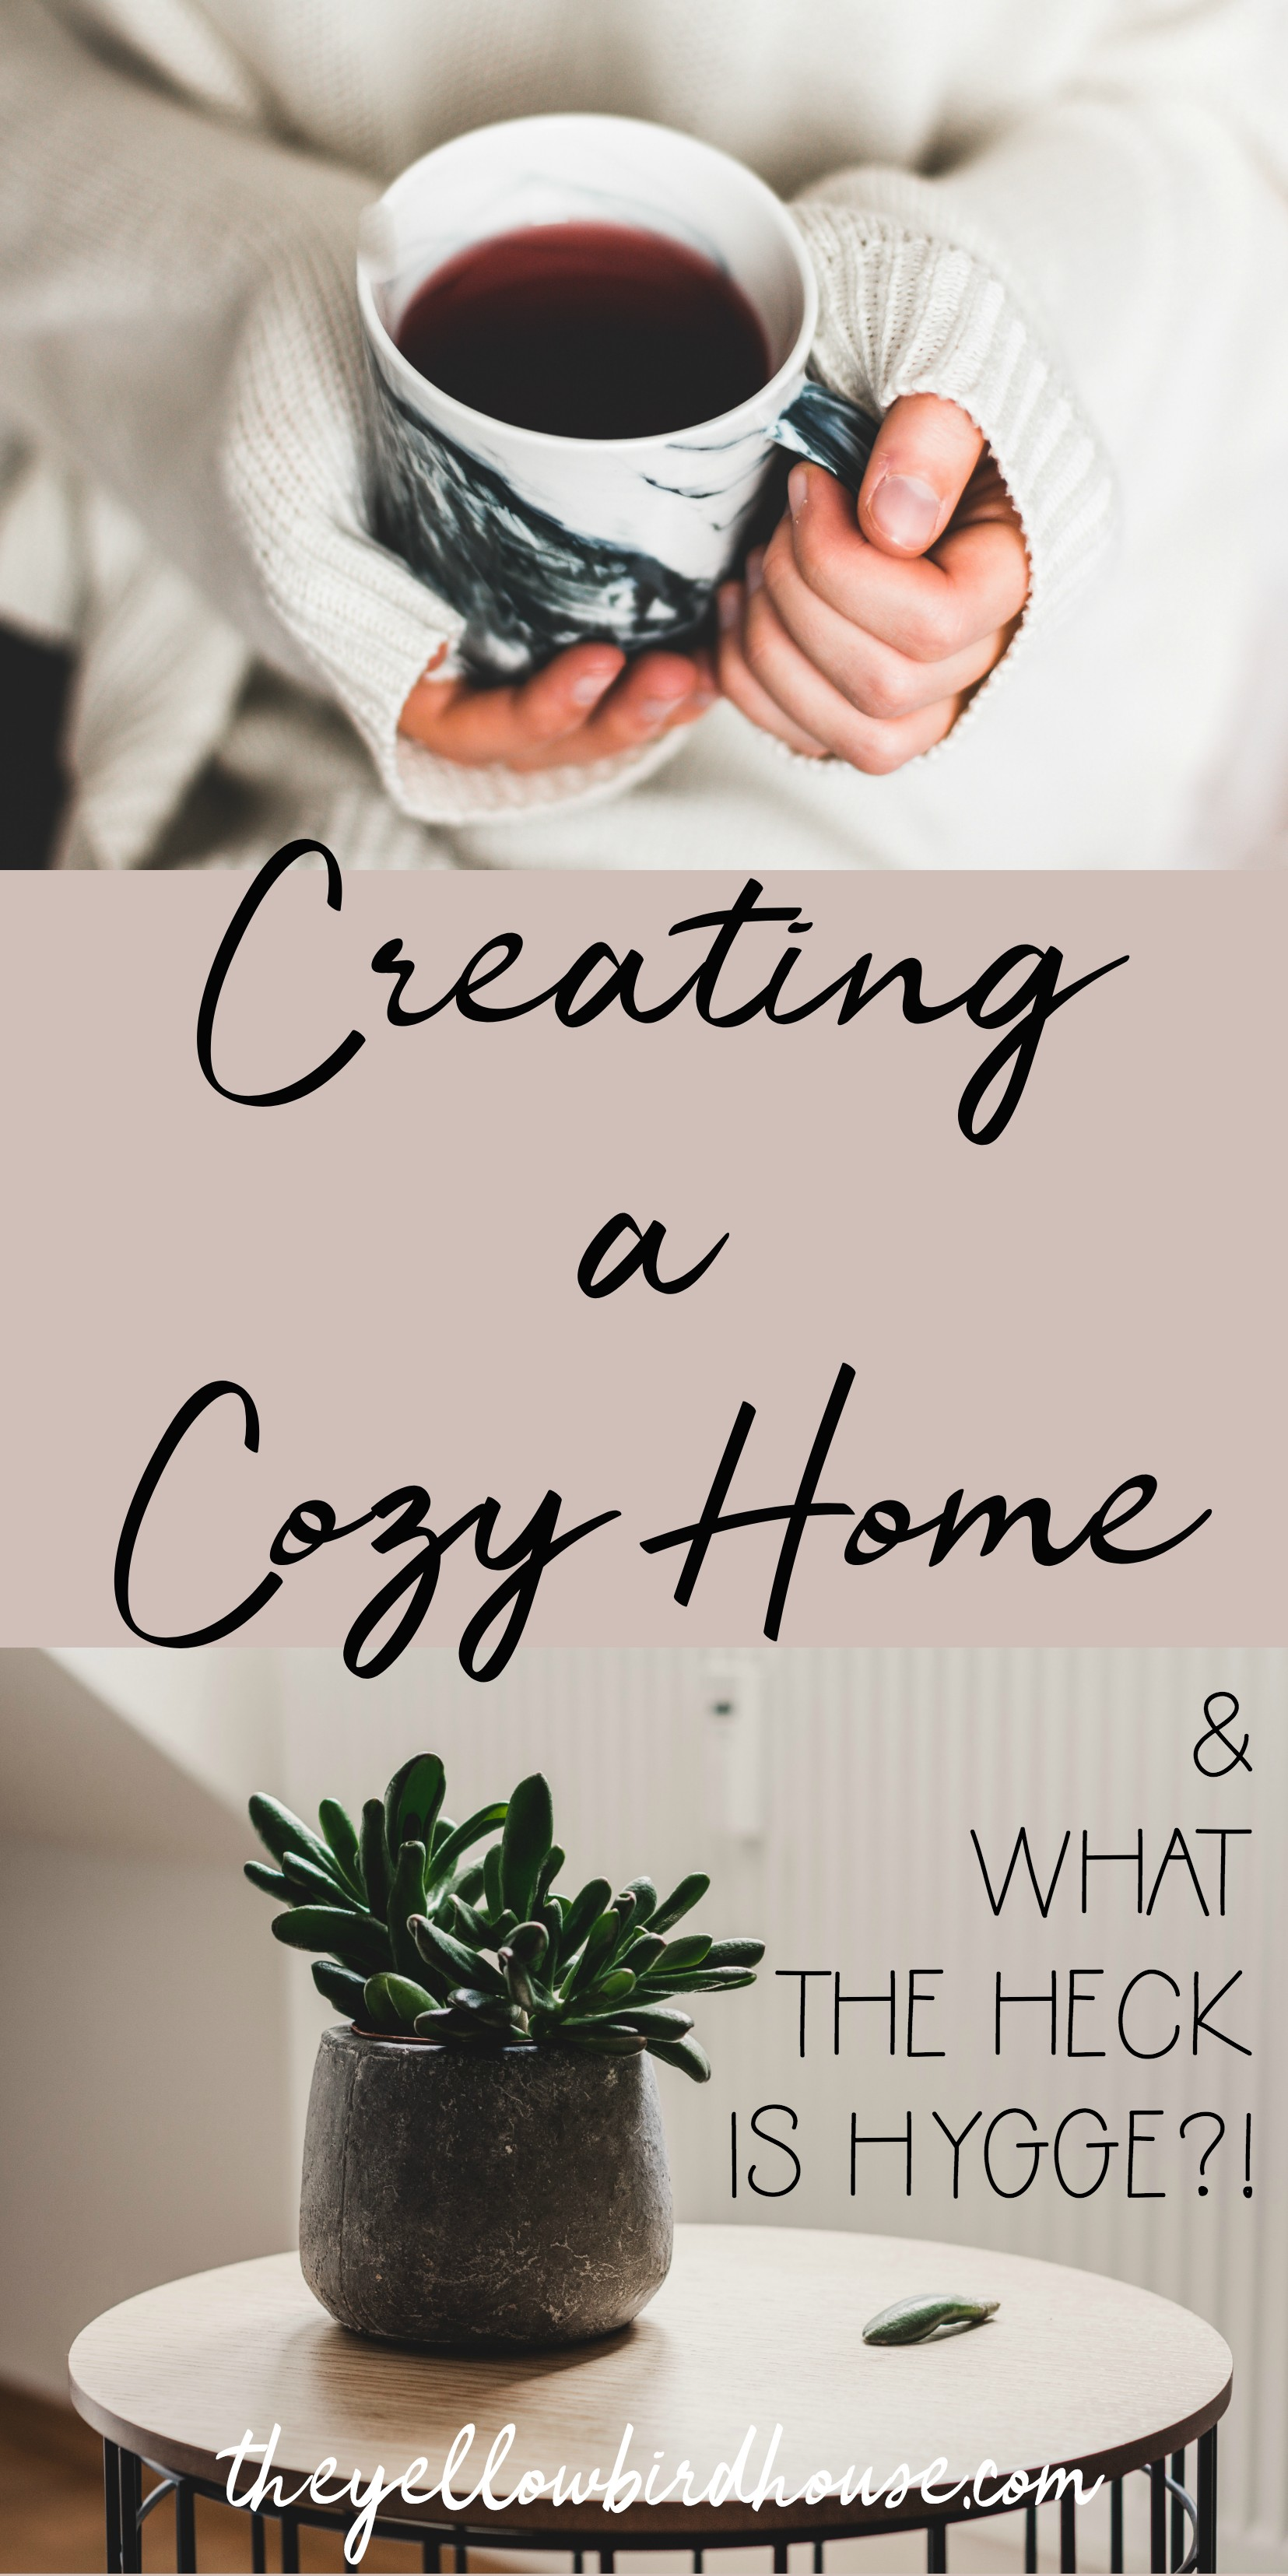 Join me on my journey of creating a cozy home and a soft place to land for my family. Also, I try to decipher what Hygge is and how I can apply it's principles to my lifestyle. Designing a comfortable and peace filled home is made a little easier by following a Hygge lifestyle.